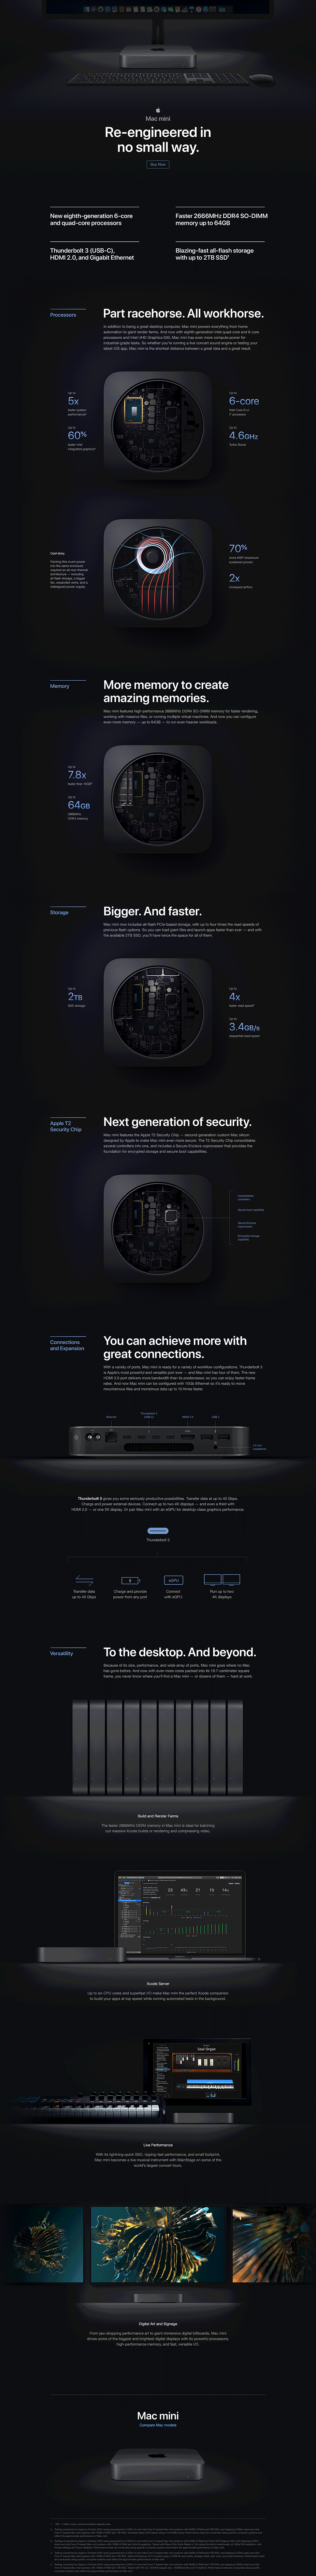 macmini-overview.png